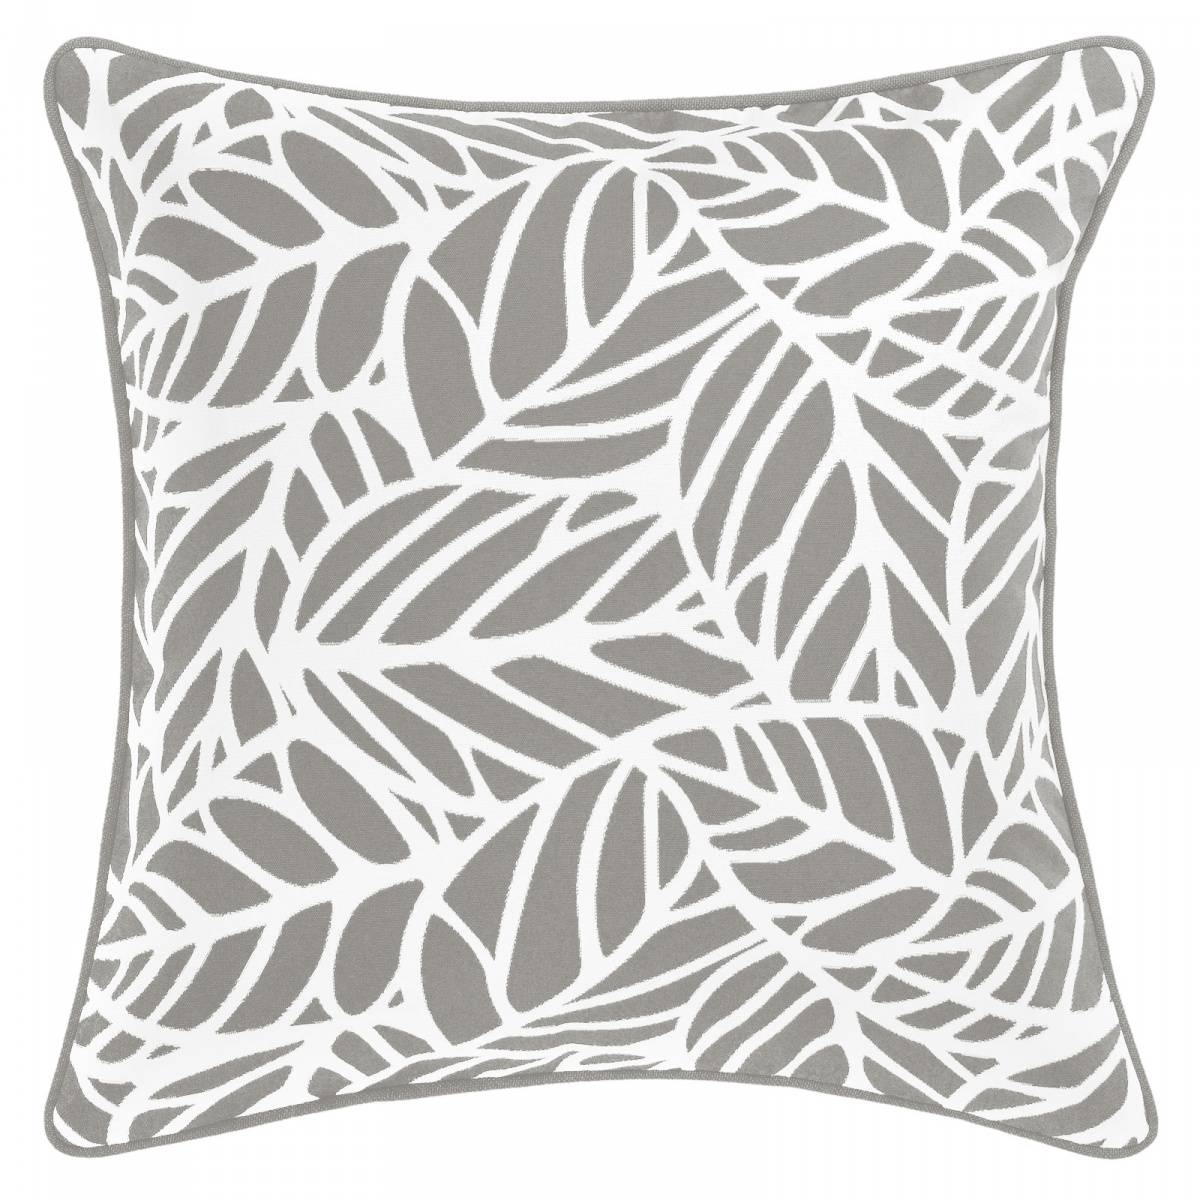 Tulum Pumice Outdoor Cushion with Piping - 45x45cm